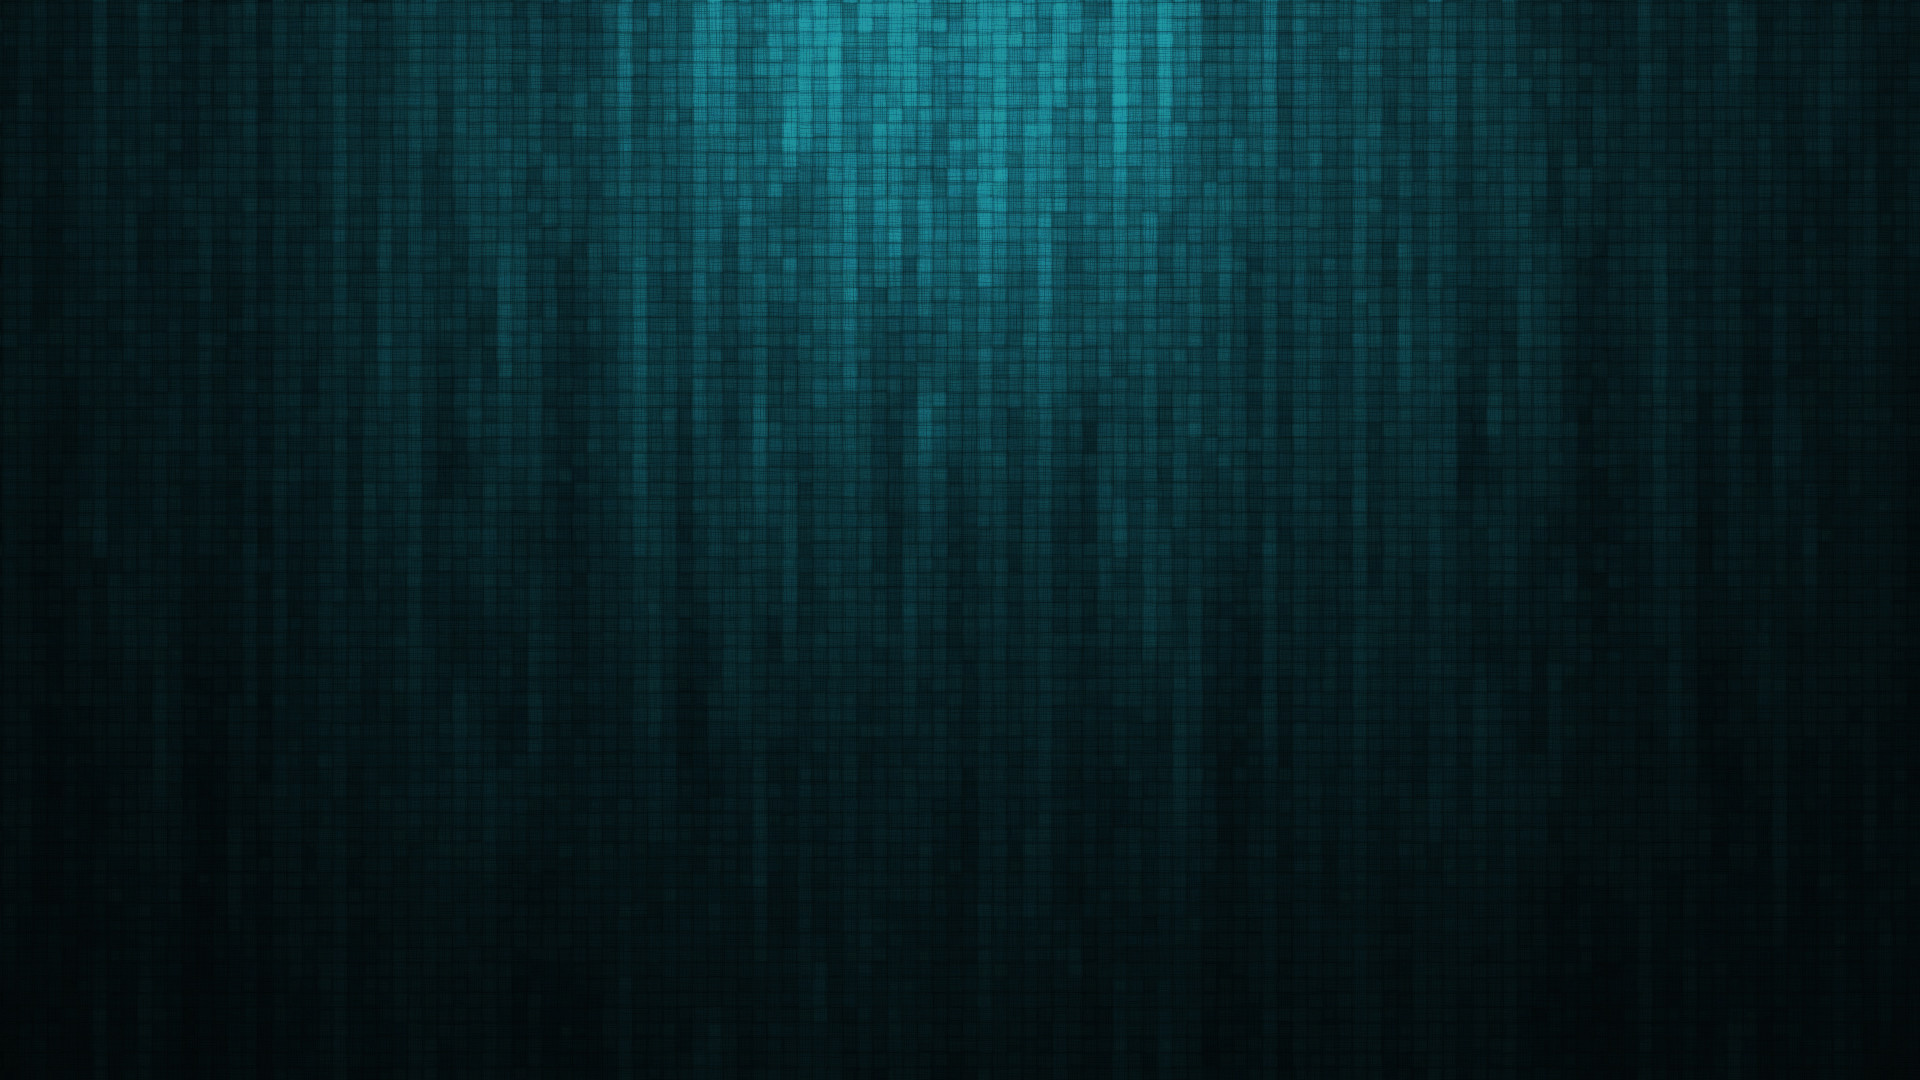 1920x1080 Basic Blue Wallpaper  by BlackLotusXX Basic Blue Wallpaper   by BlackLotusXX